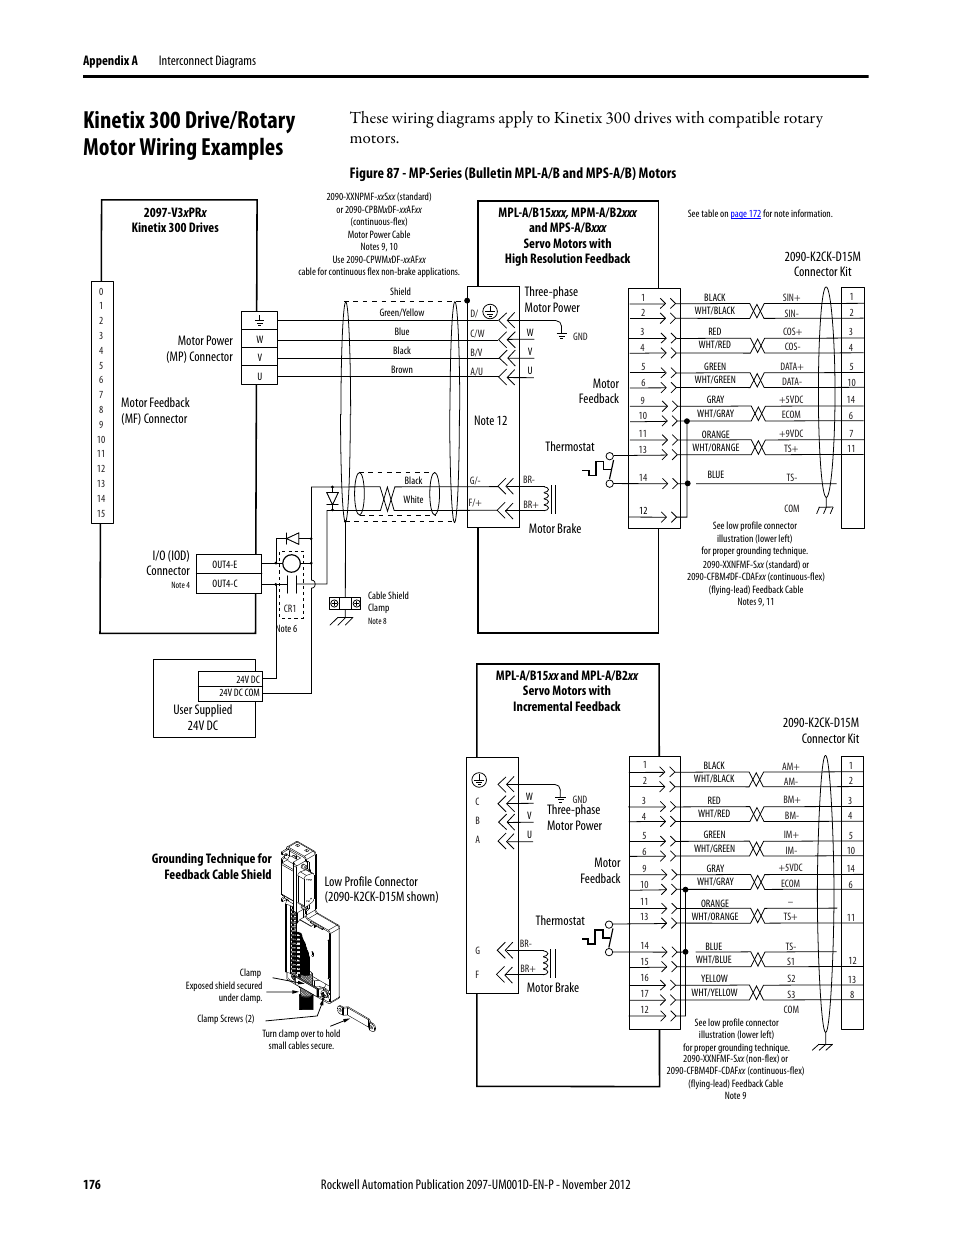 Kinetix 300 Drive  Rotary Motor Wiring Examples